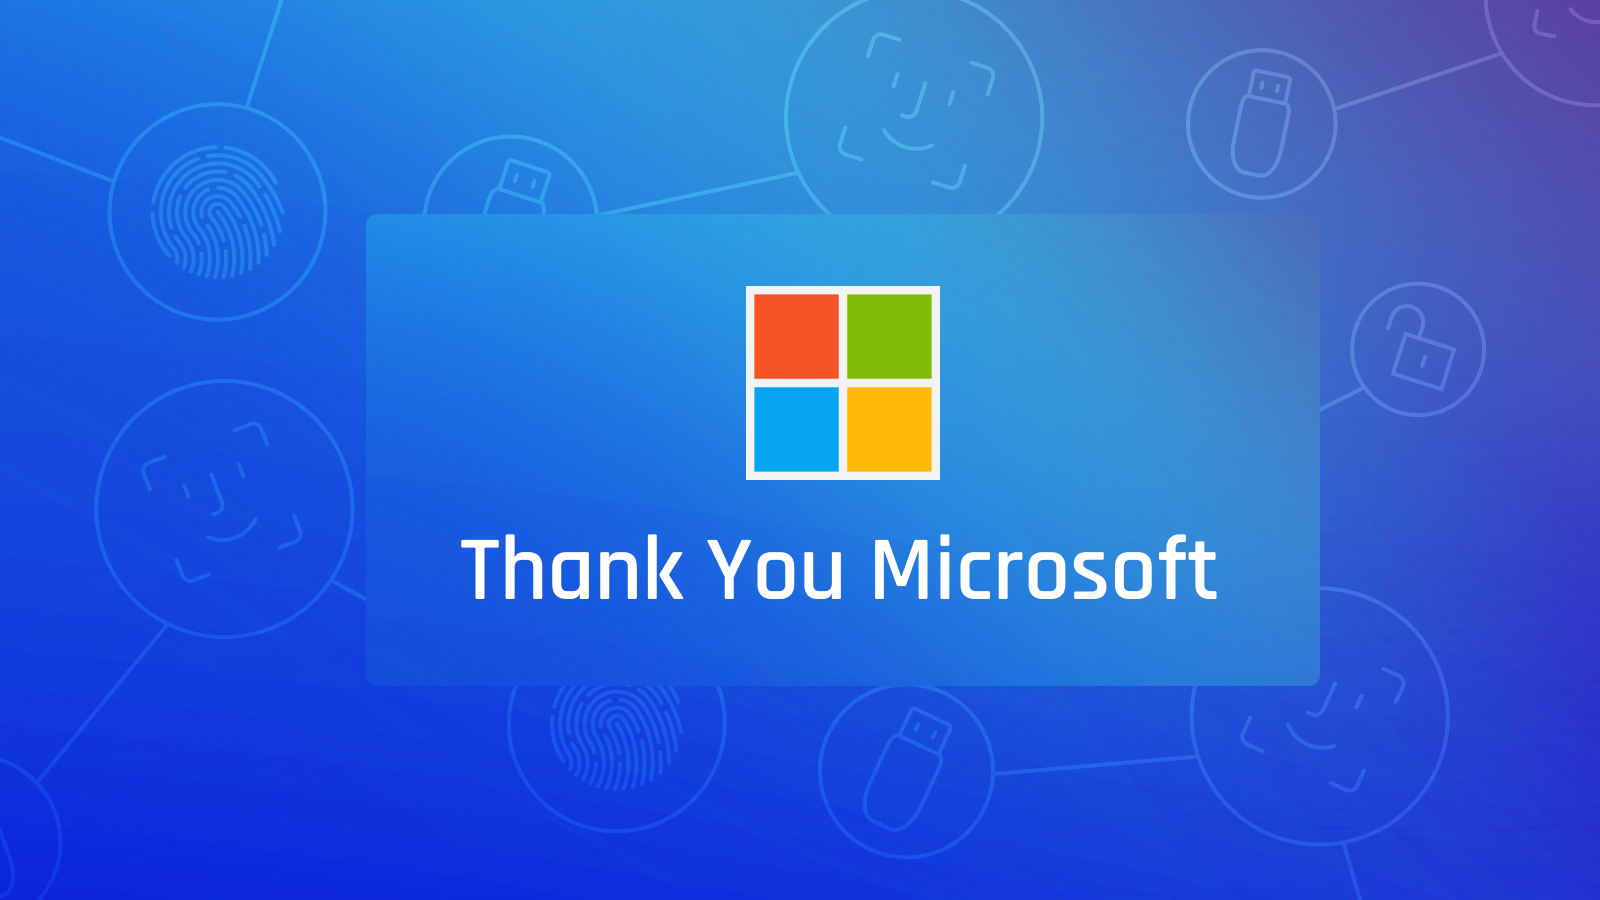 Thank You Microsoft for Helping to Drive Passwordless Adoption